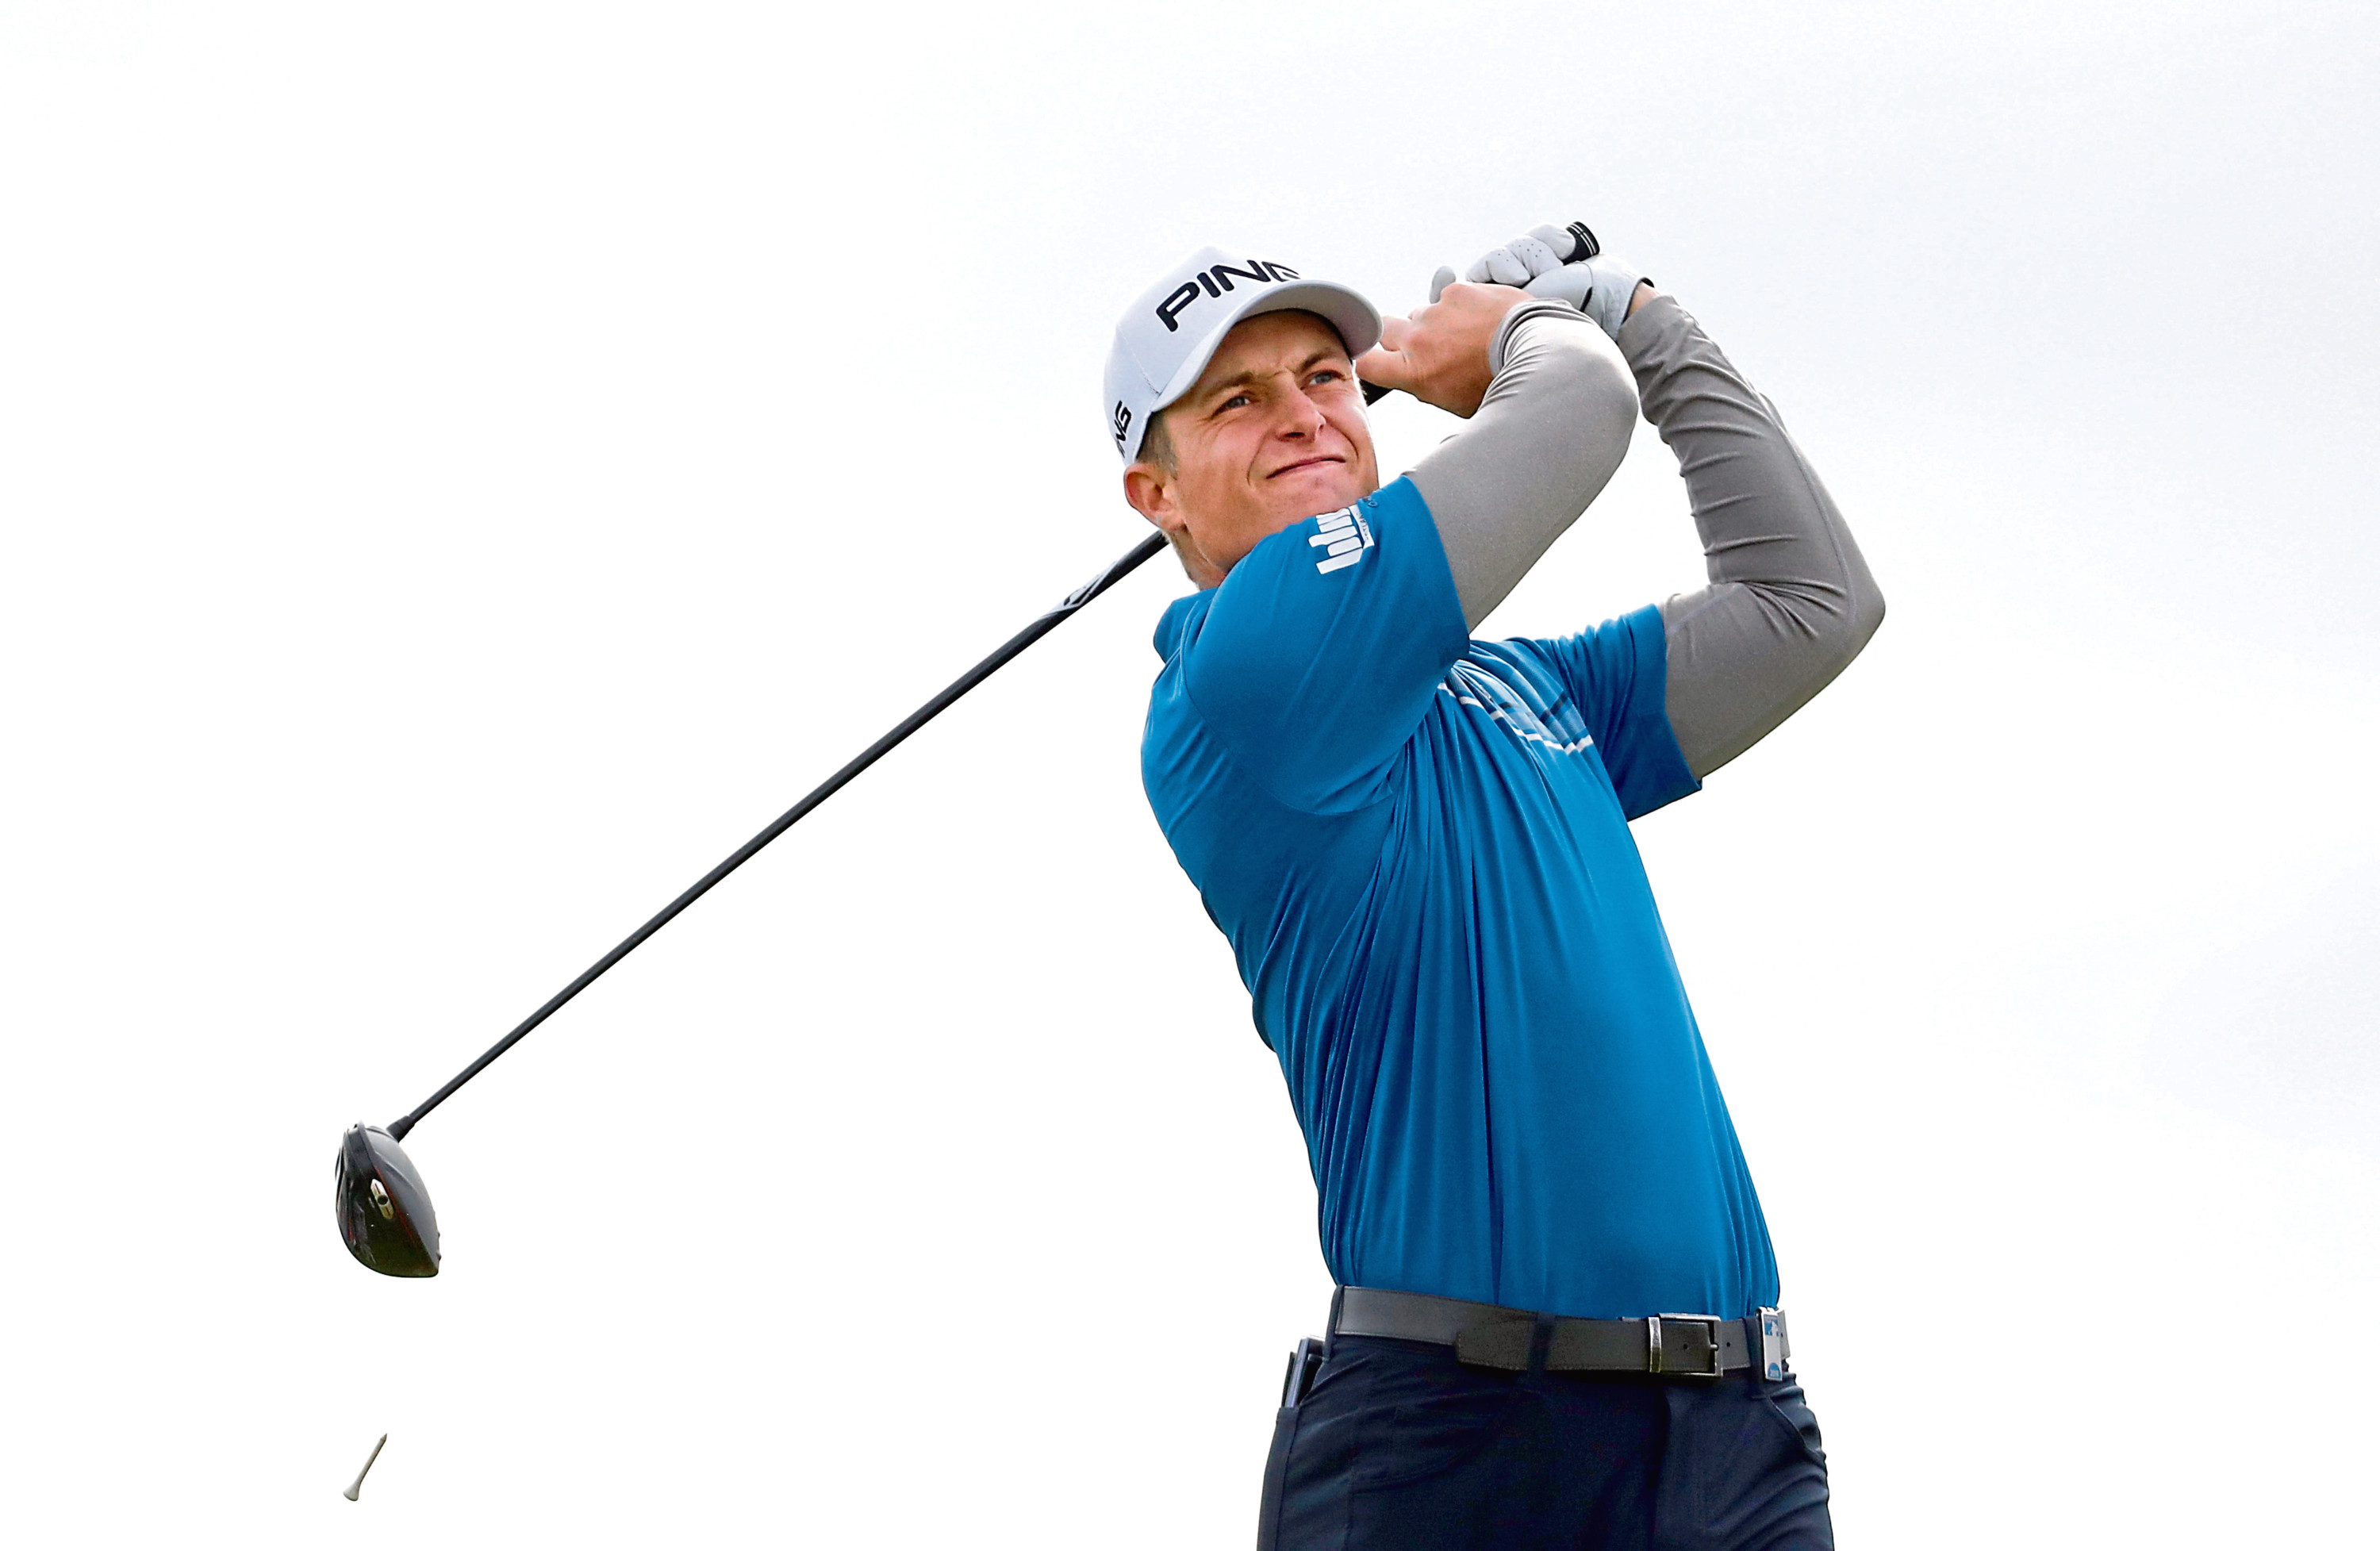 Calum Hill of Scotland tees off on the 6th hole during day two of the Alfred Dunhill Links Championship. (Photo by Matthew Lewis/Getty Images)